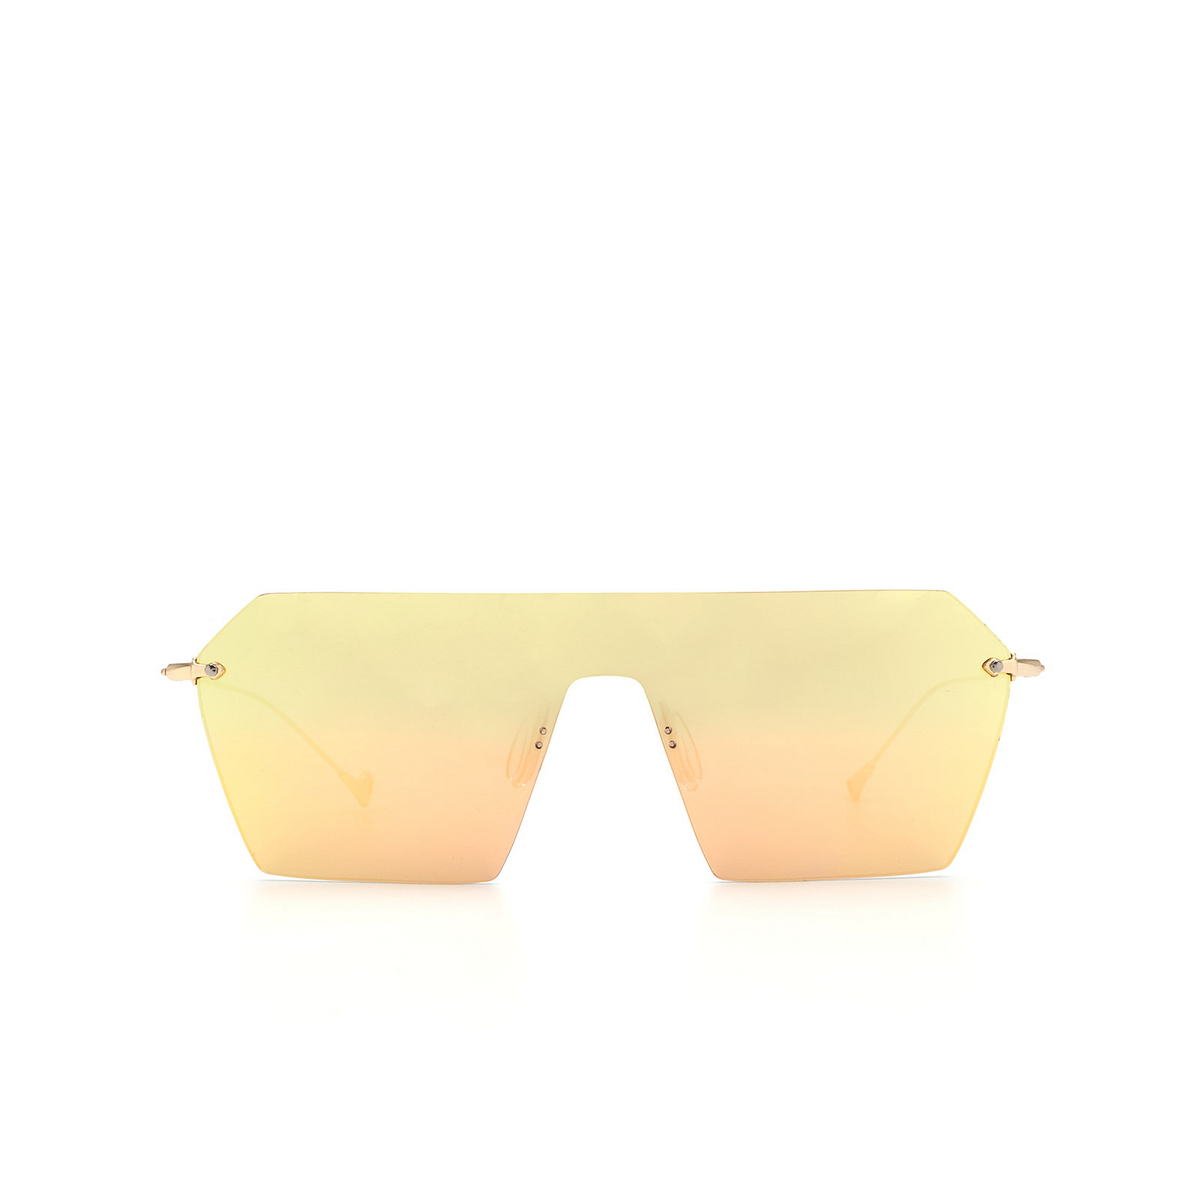 Eyepetizer® Mask Sunglasses: Fortuny color Gold C 2-8C - front view.